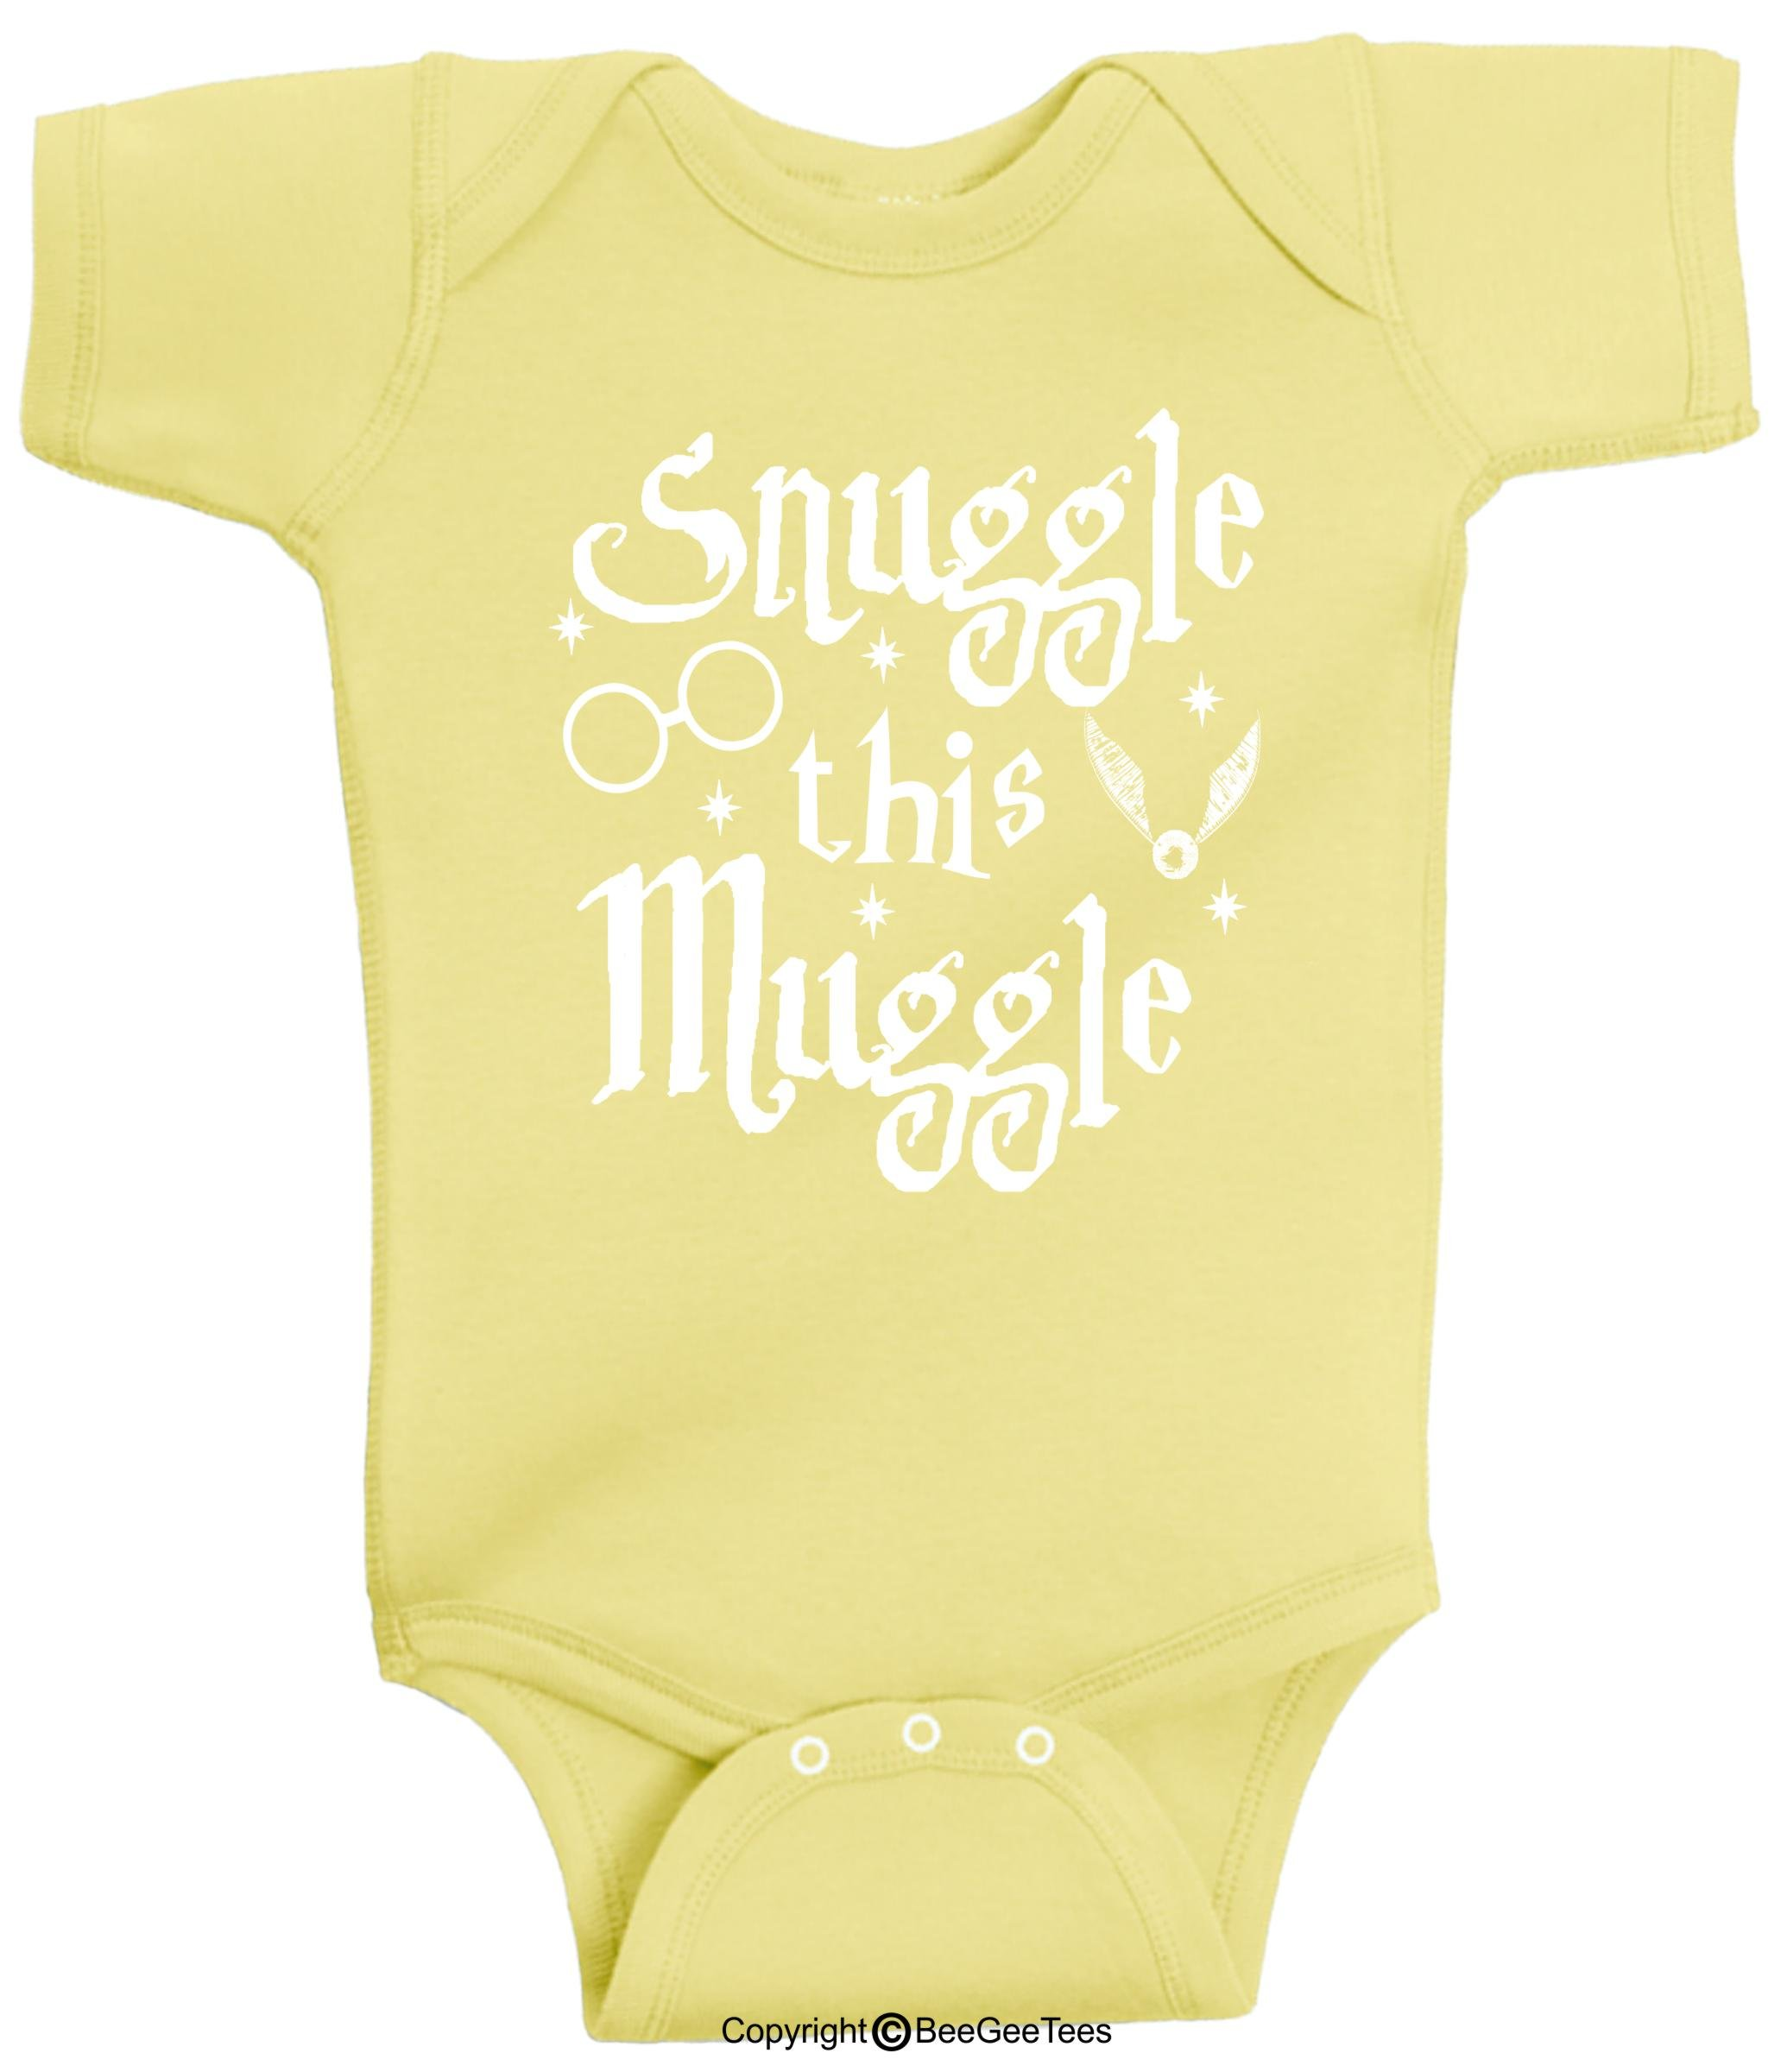 BeeGeeTees MUGGLE BORN Funny Harry Potter Baby Wizard Onesie Banana